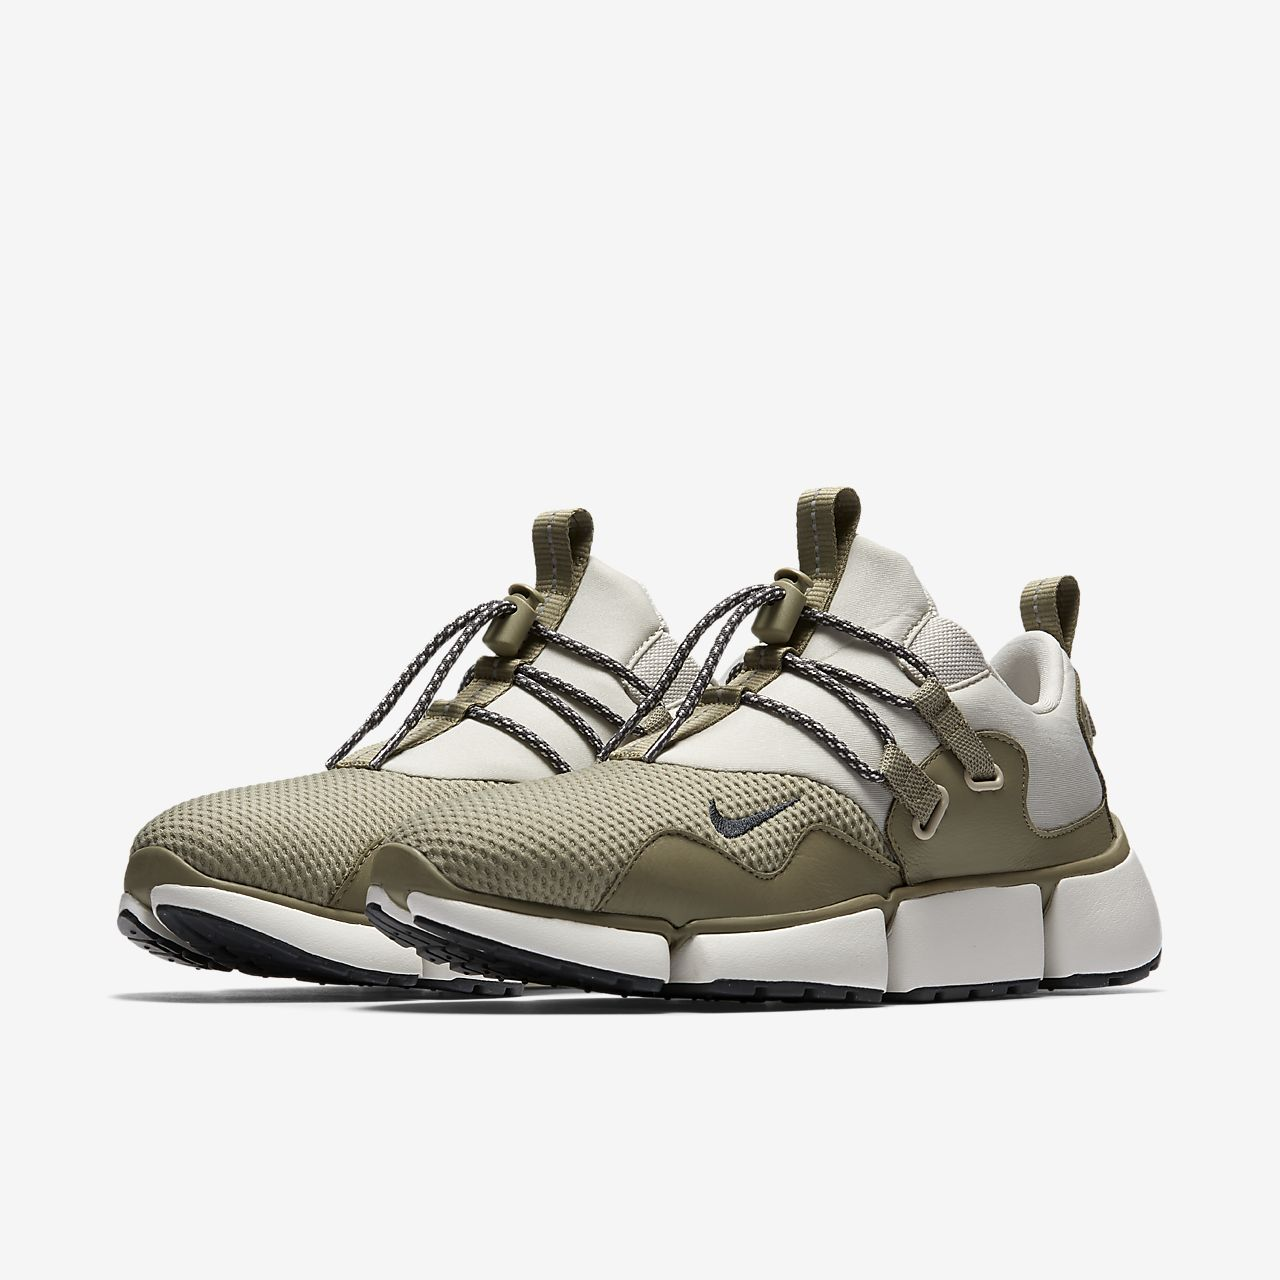 ... Nike Pocket Knife DM Men's Shoe